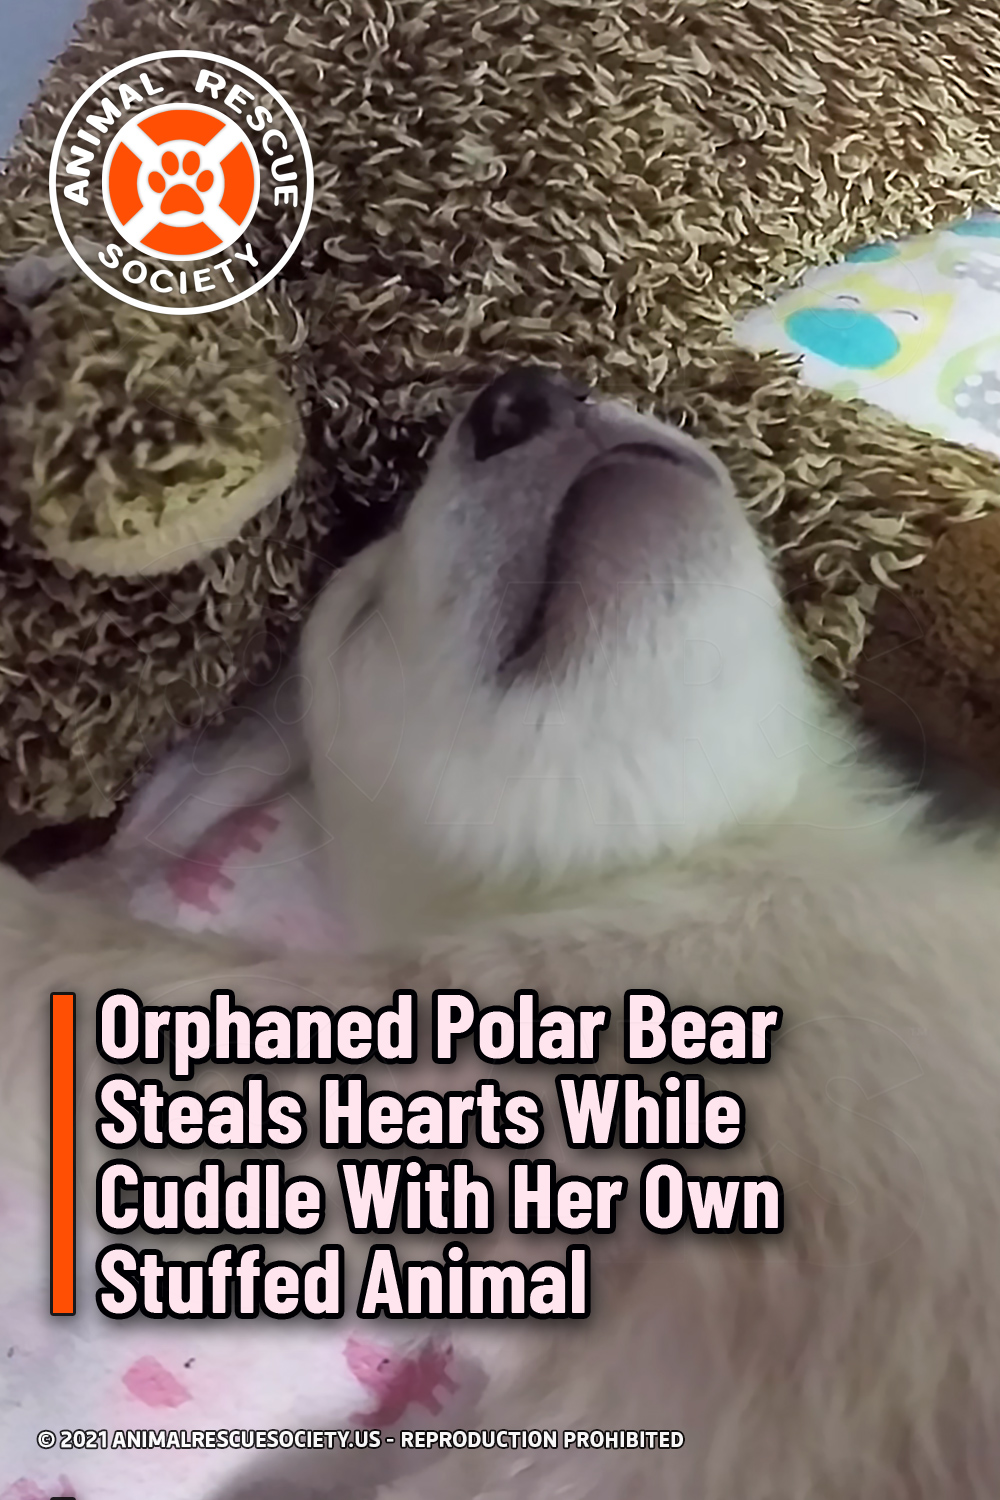 Orphaned Polar Bear Steals Hearts While Cuddle With Her Own Stuffed Animal